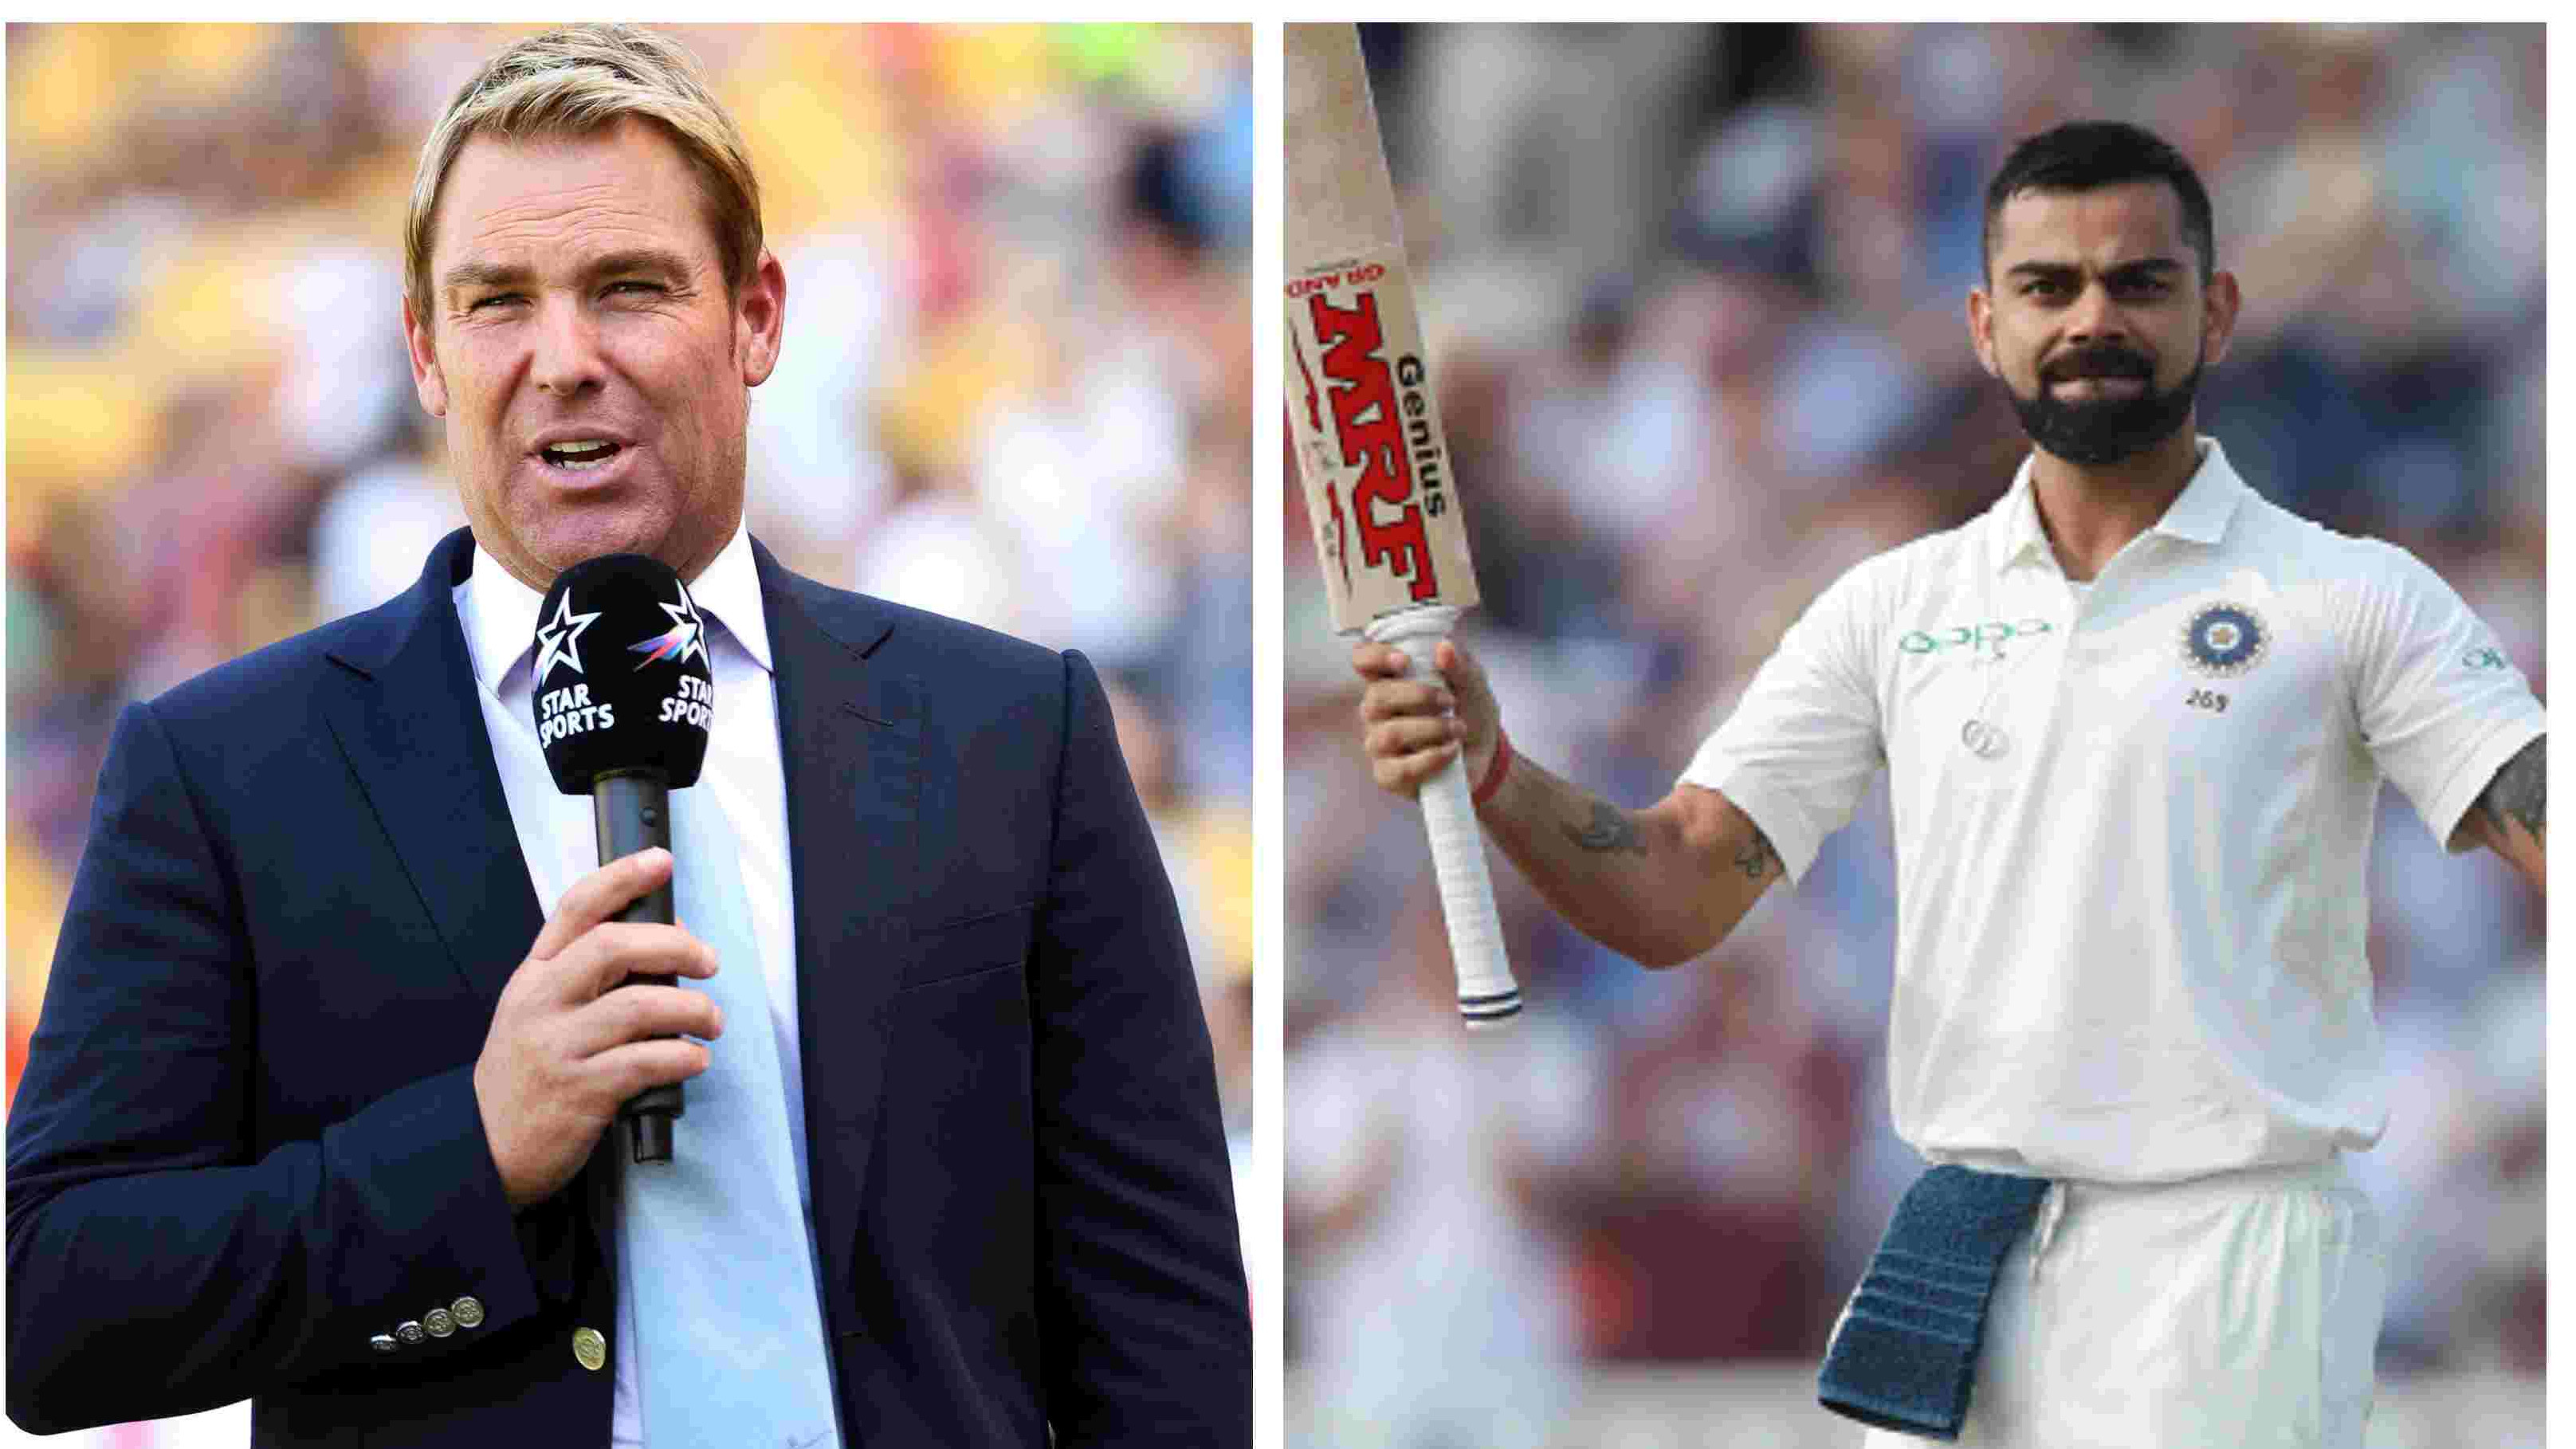 ENG v IND 2018: Virat Kohli can go up there in the conversation involving Tendulkar and Lara, says Shane Warne